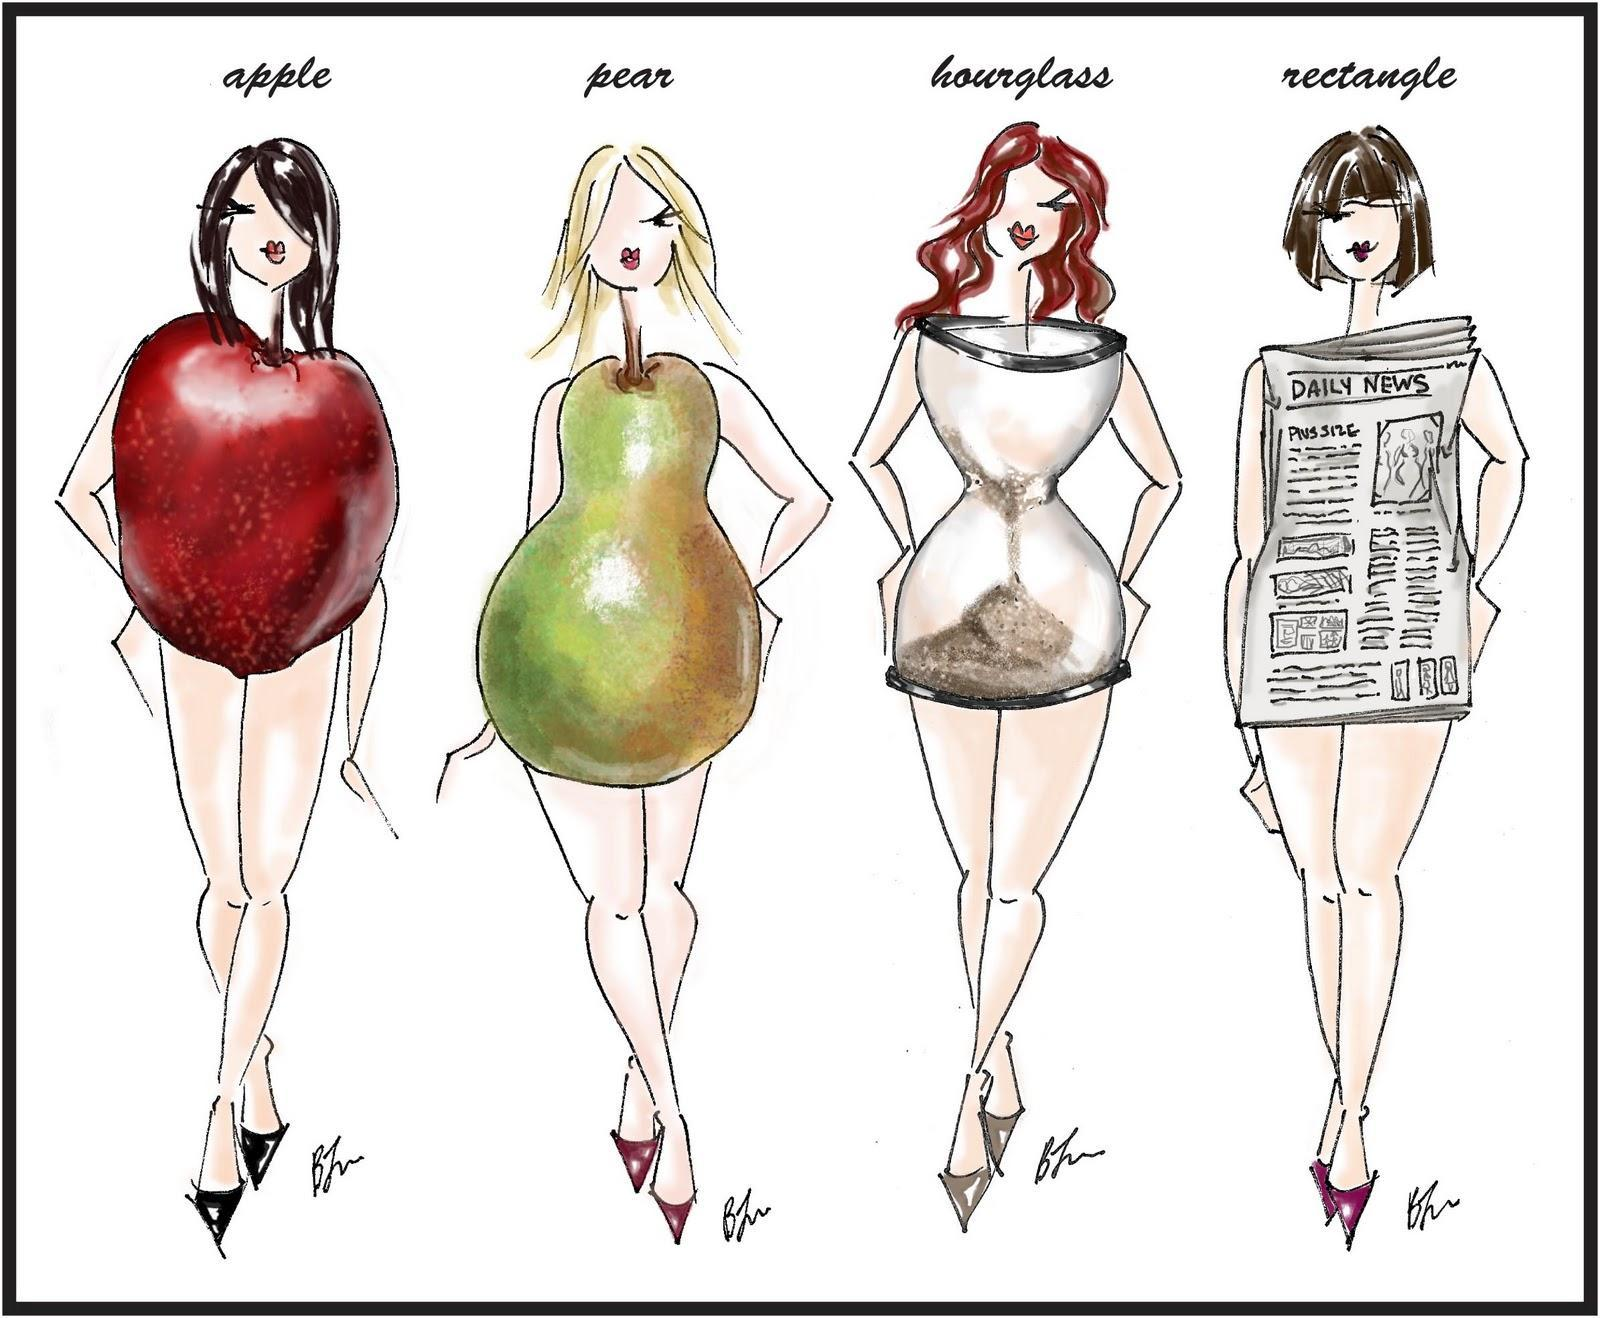 What is your body type? (Be HONEST! Nobody will see your answer!)